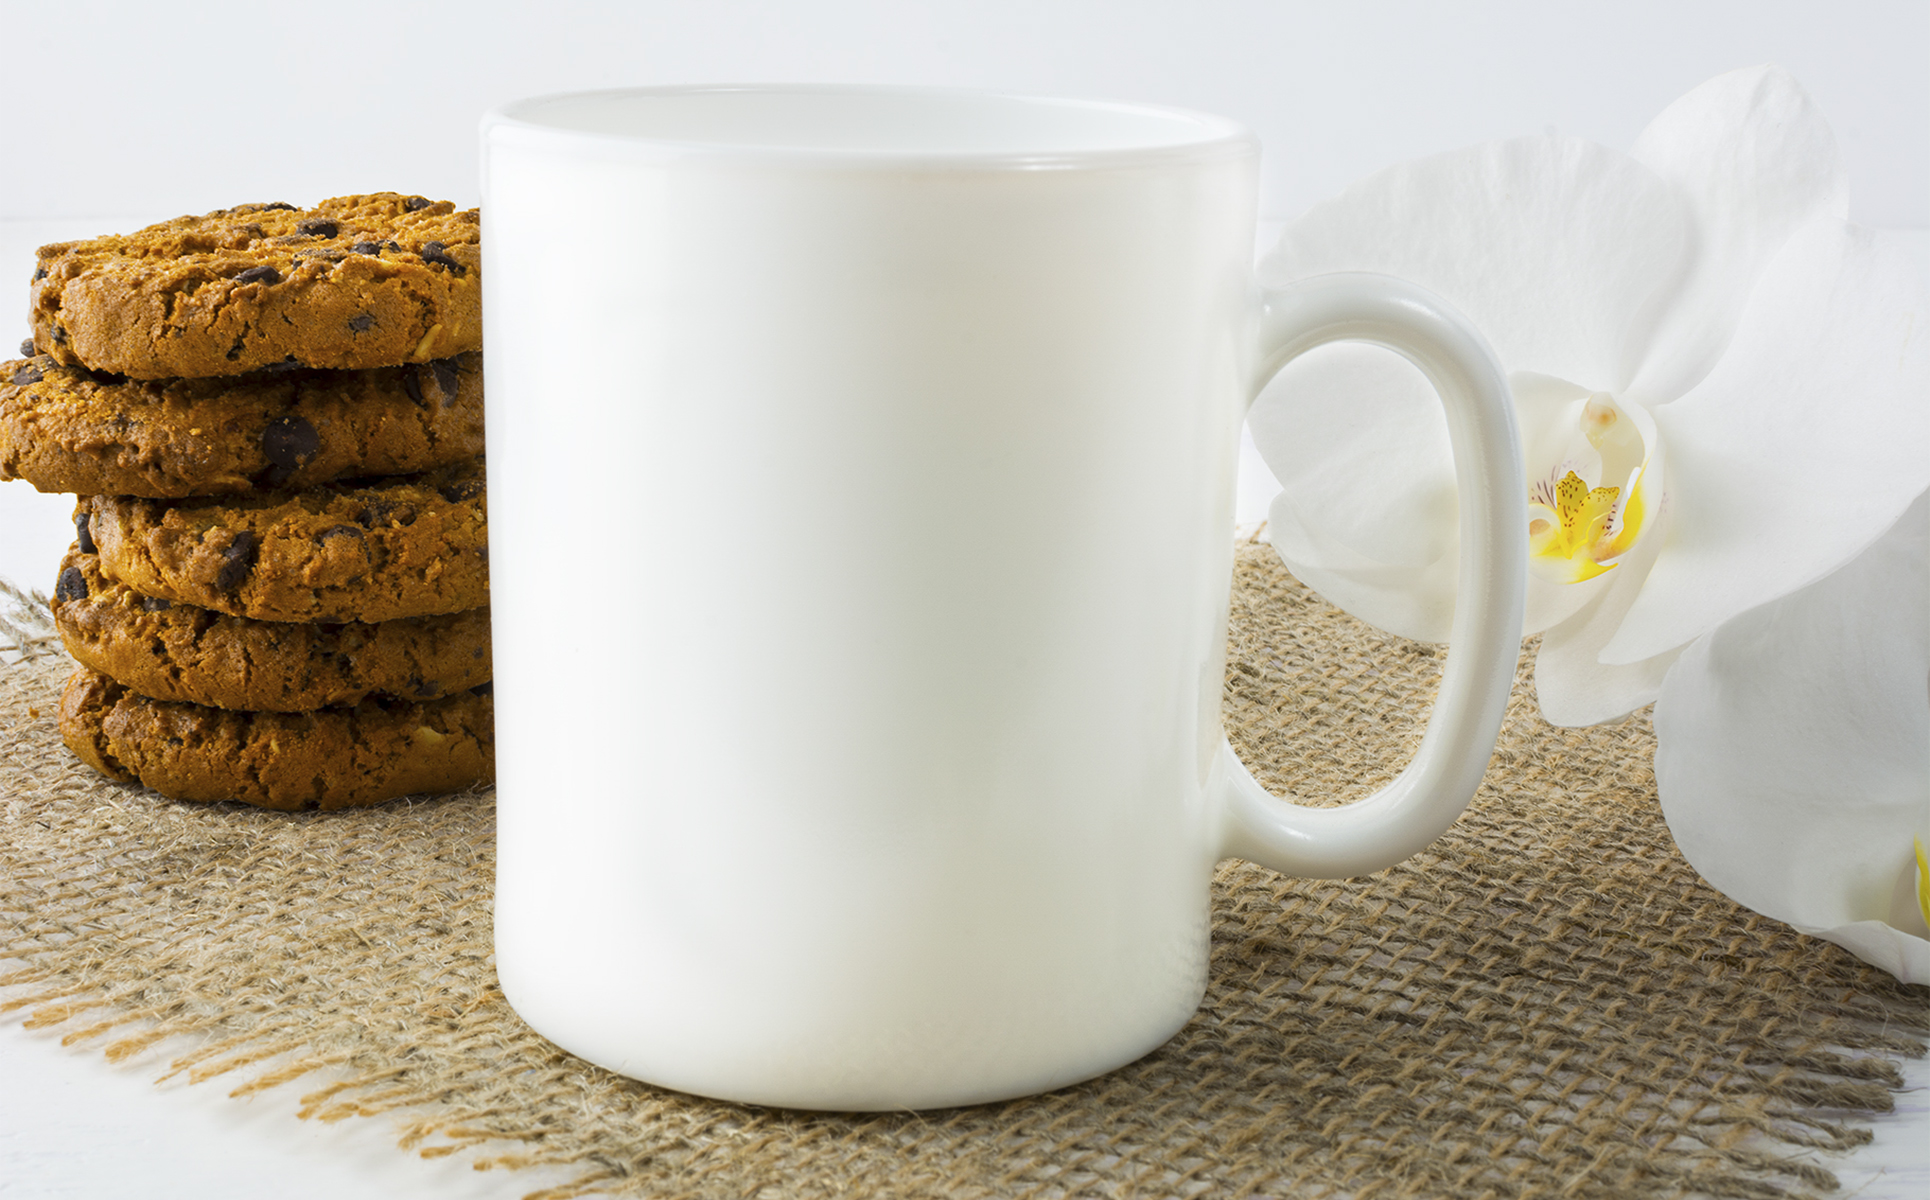 https://s3.tmimgcdn.com/templates/37920/scr/1569914758218_Coffee%20mug%20mockup%20with%20cookies_p_tmp1.jpg